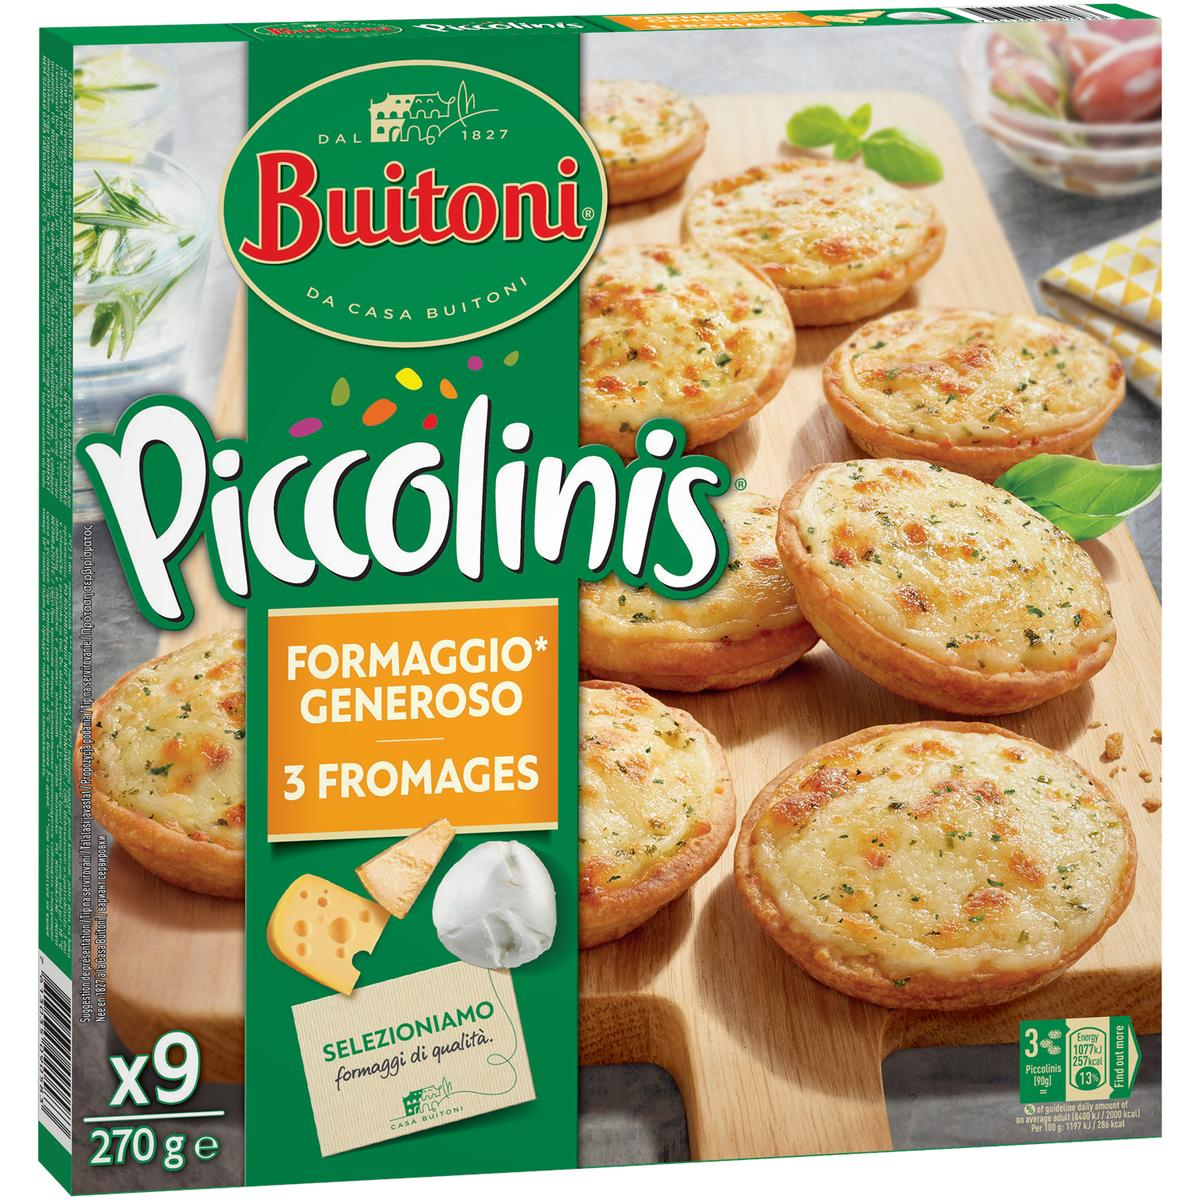 Piccolinis aux 3 fromages, Buitoni (270 g)